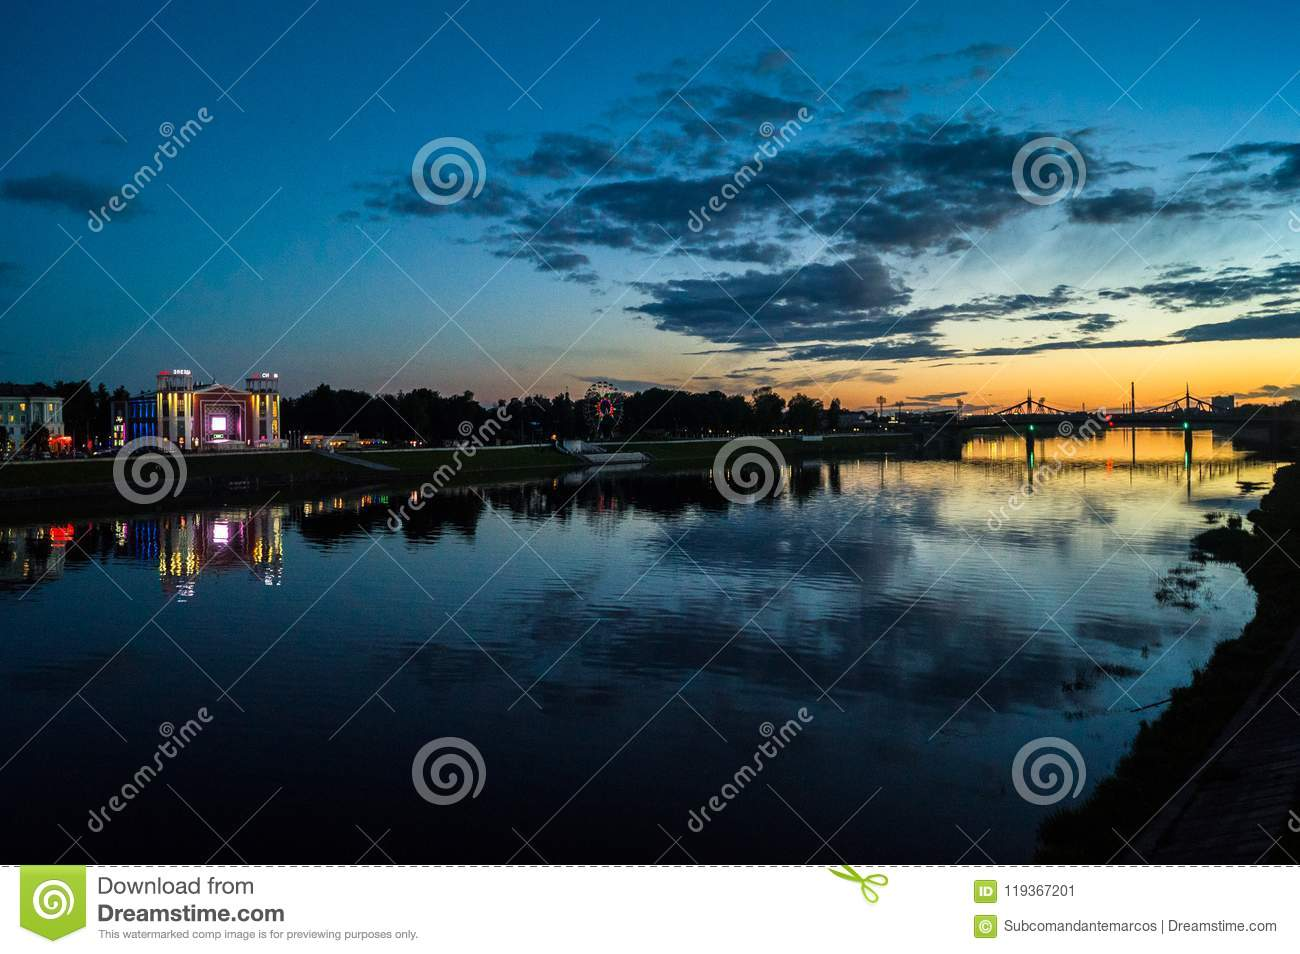 finest selection 66173 637e0 Night view of the `Zvezda` cinema and public City Park on the Volga River